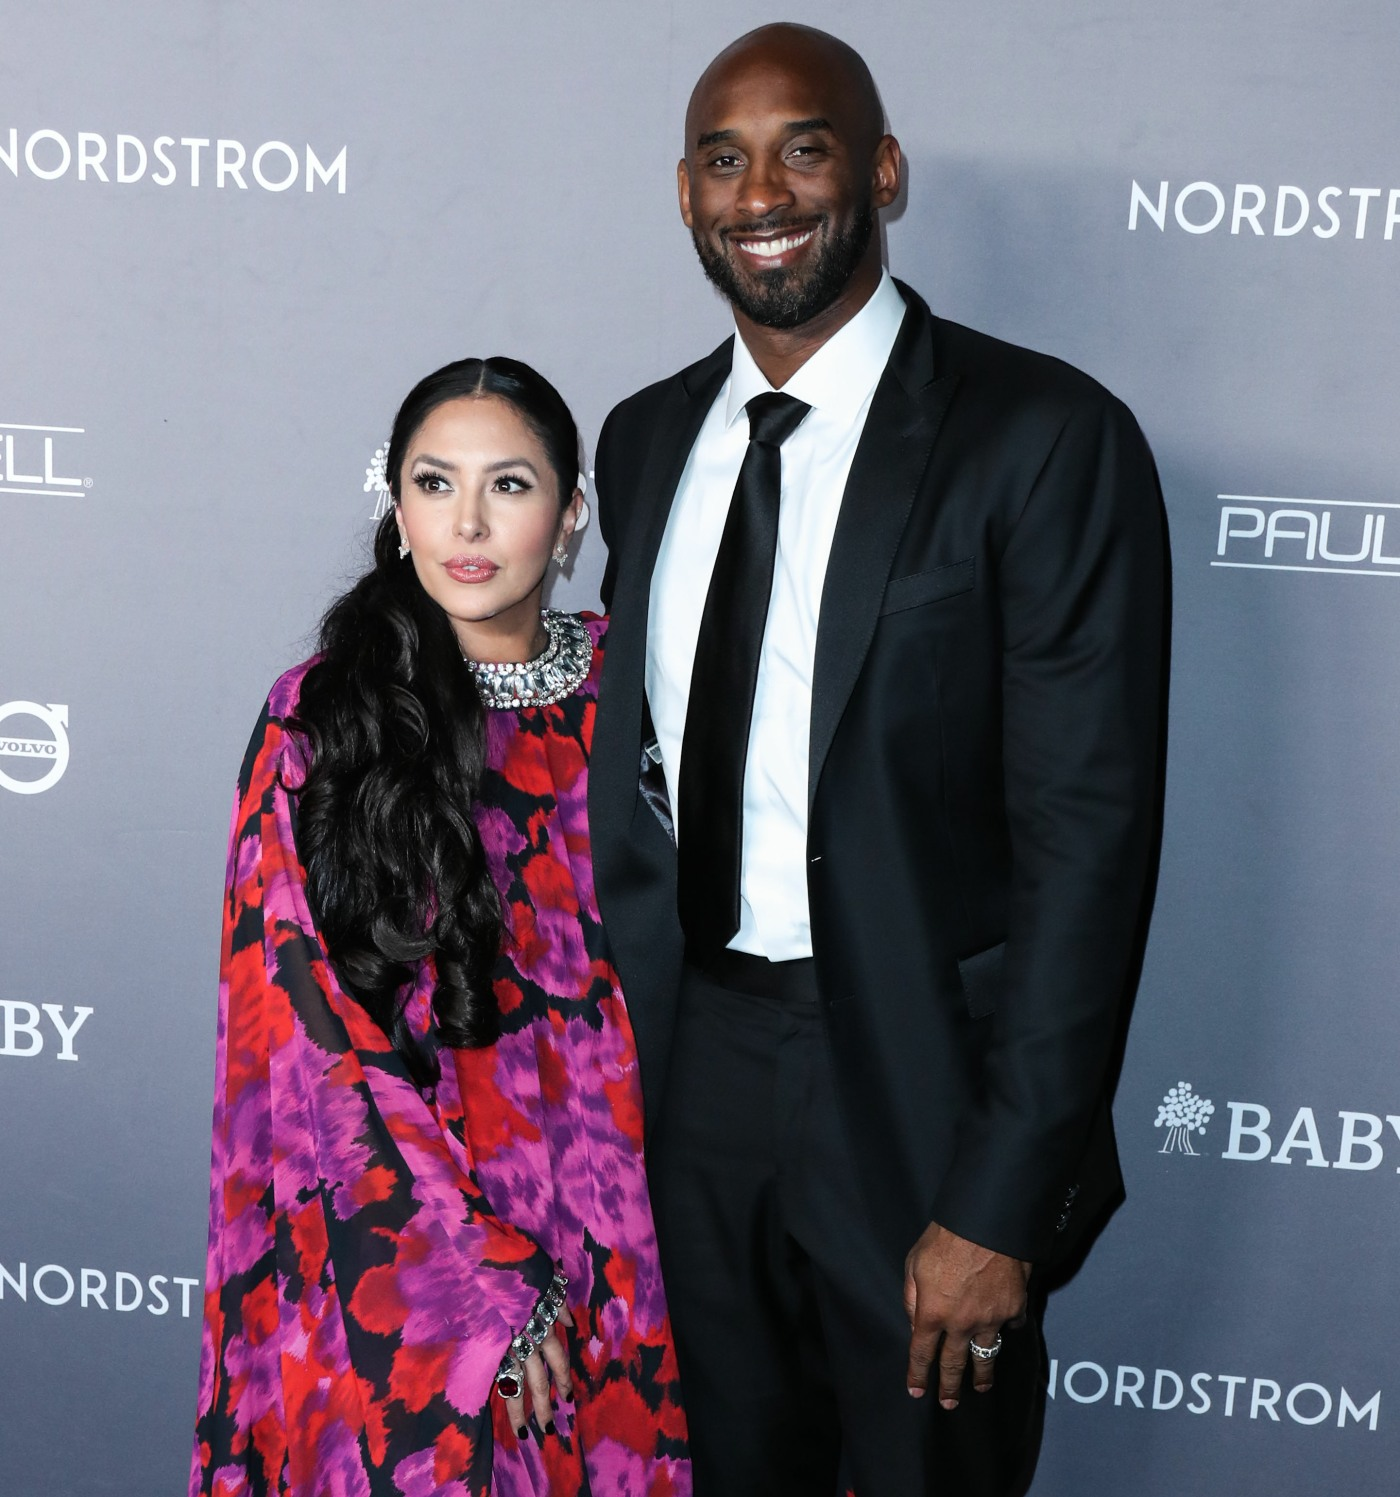 Vanessa Laine Bryant and husband/American basketball player Kobe Bryant arrive at the 2019 Baby2Baby Gala held at 3Labs on November 9, 2019 in Culver City, Los Angeles, California, United States.